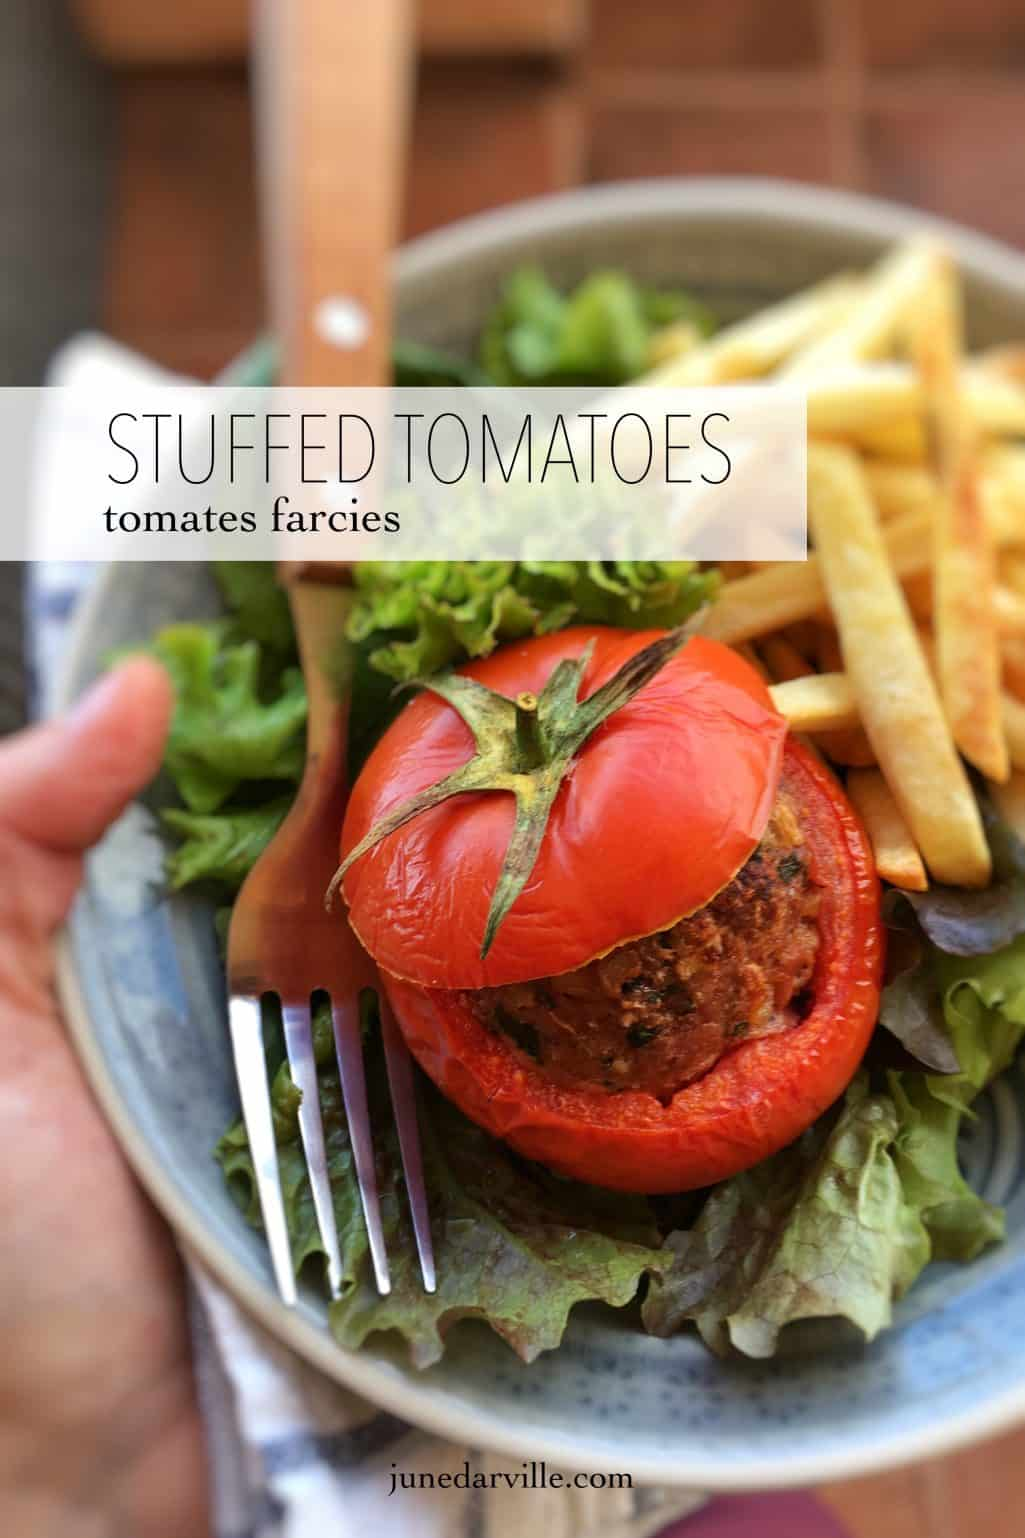 Stuffed Tomatoes Recipe (Tomates Farcies)